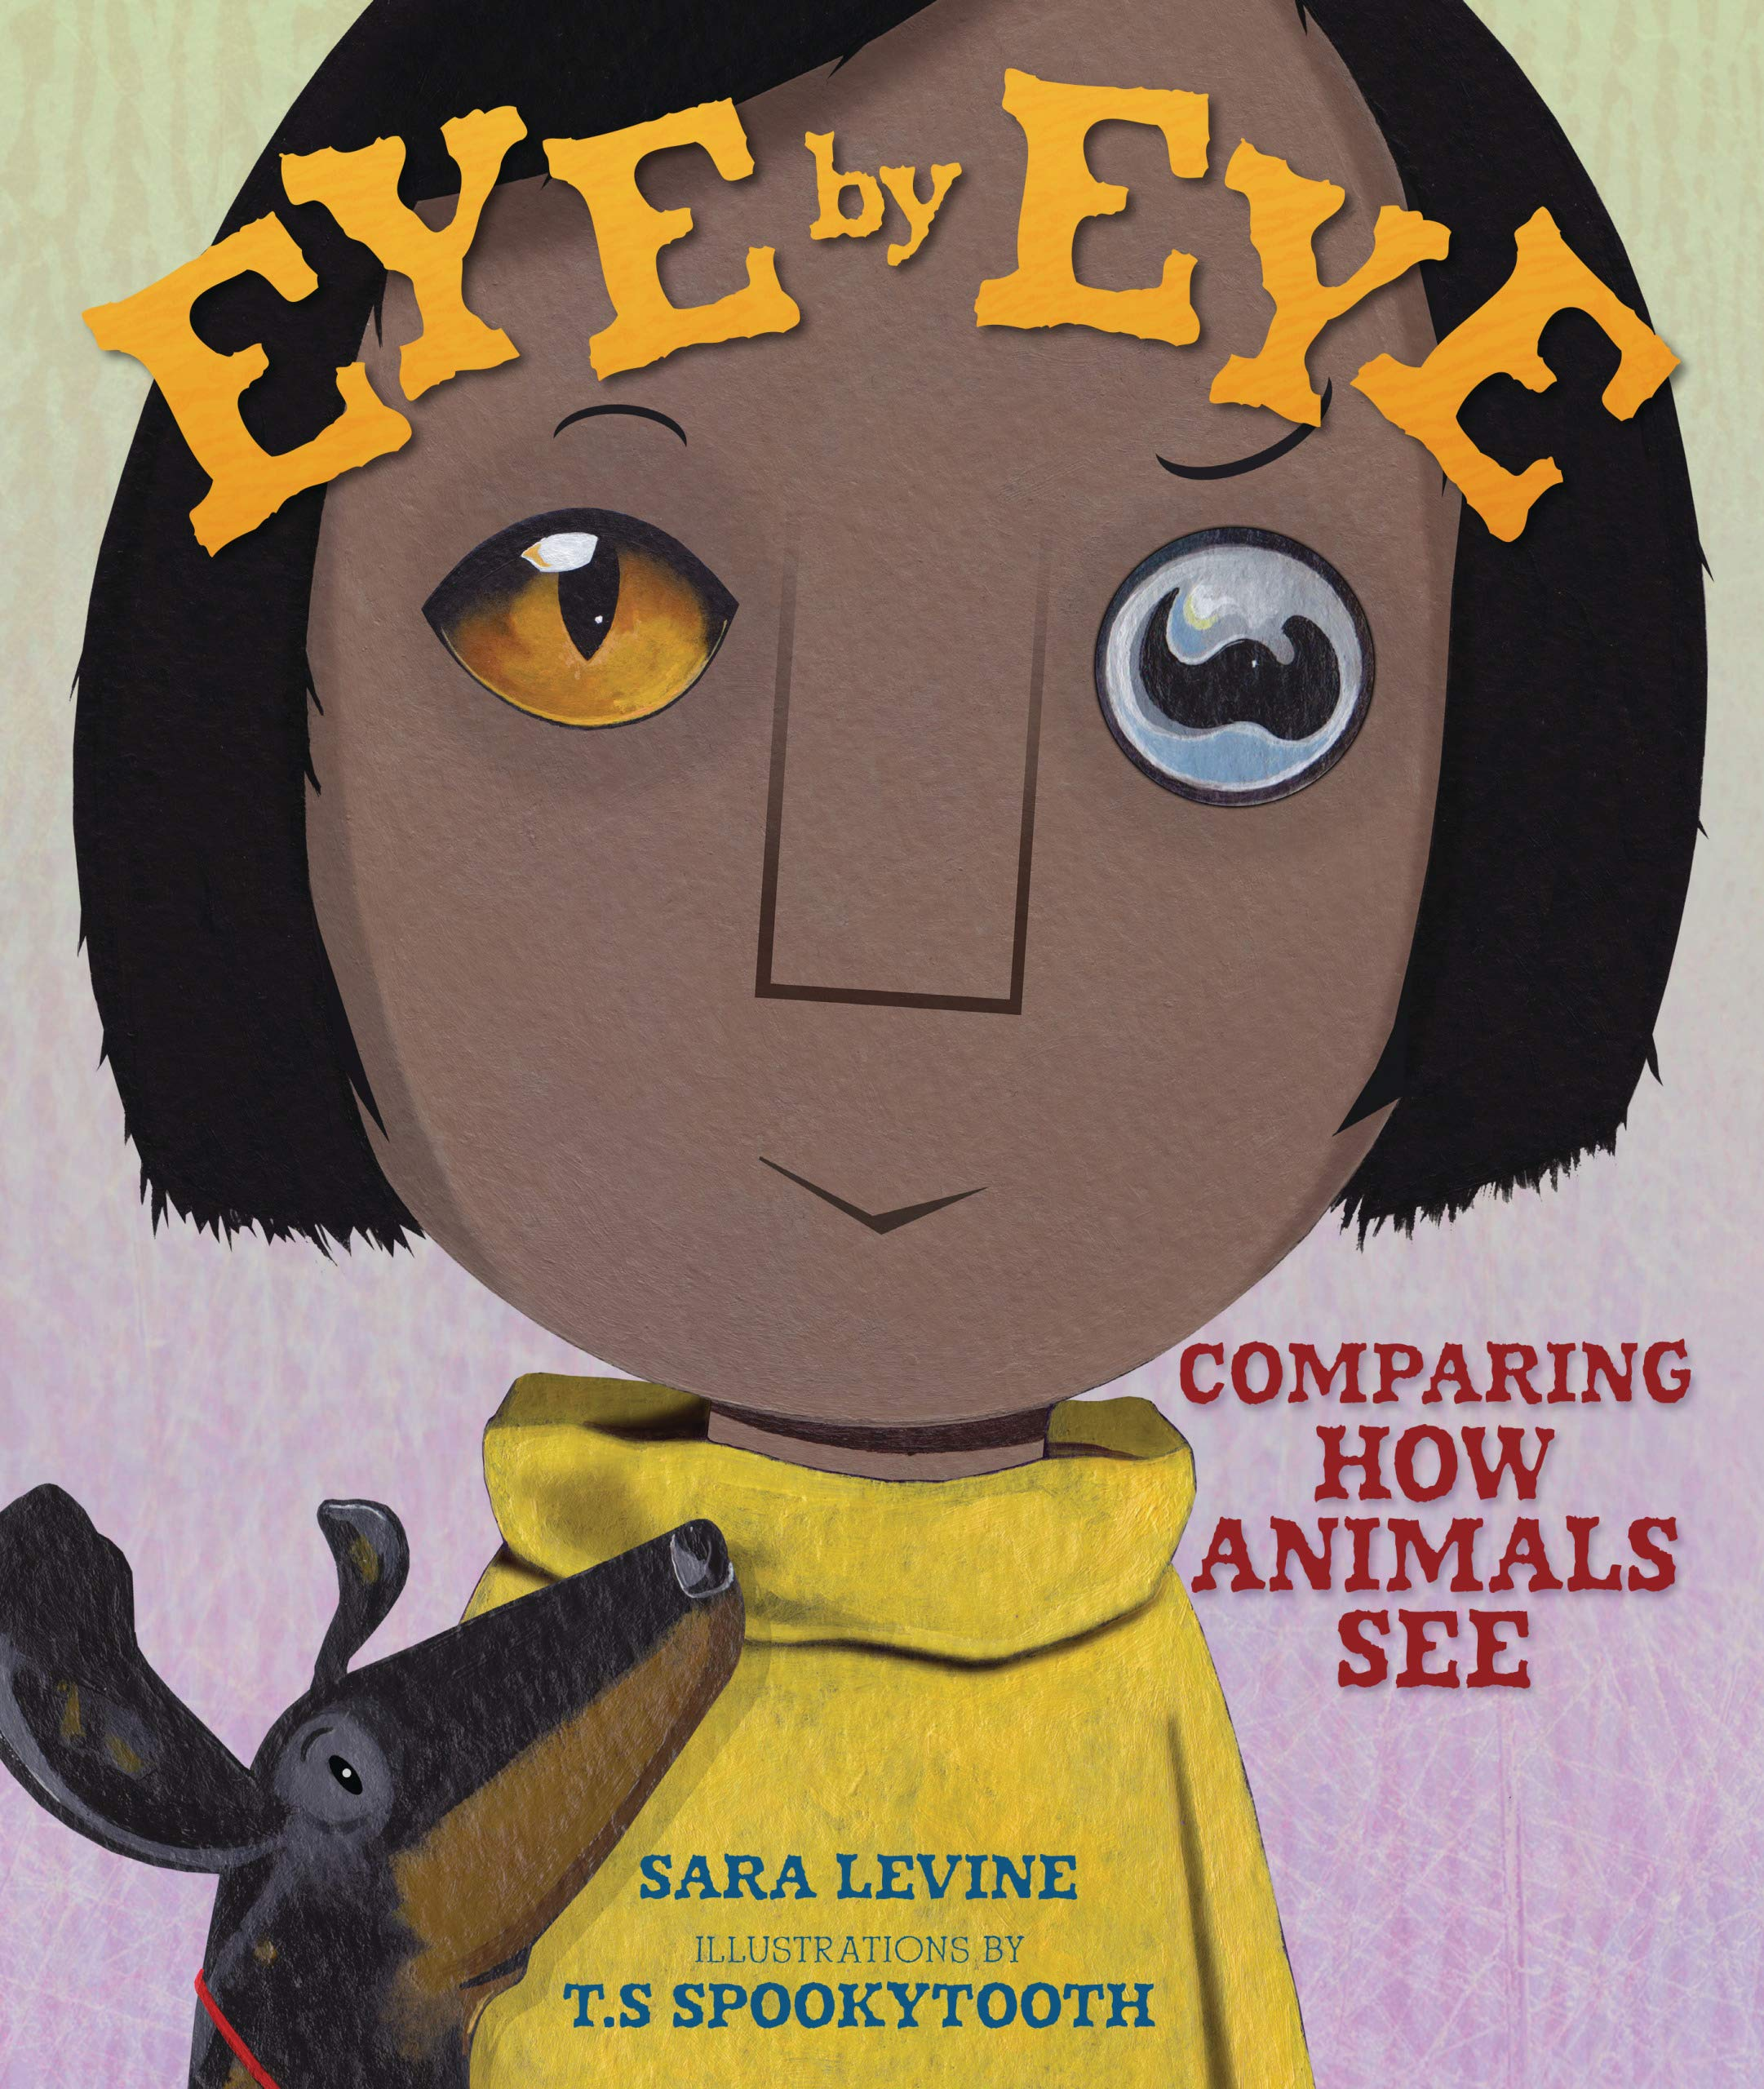 celebrate-picture-books-picture-book-review-eye-by-eye-comparing-how-animals-see-cover